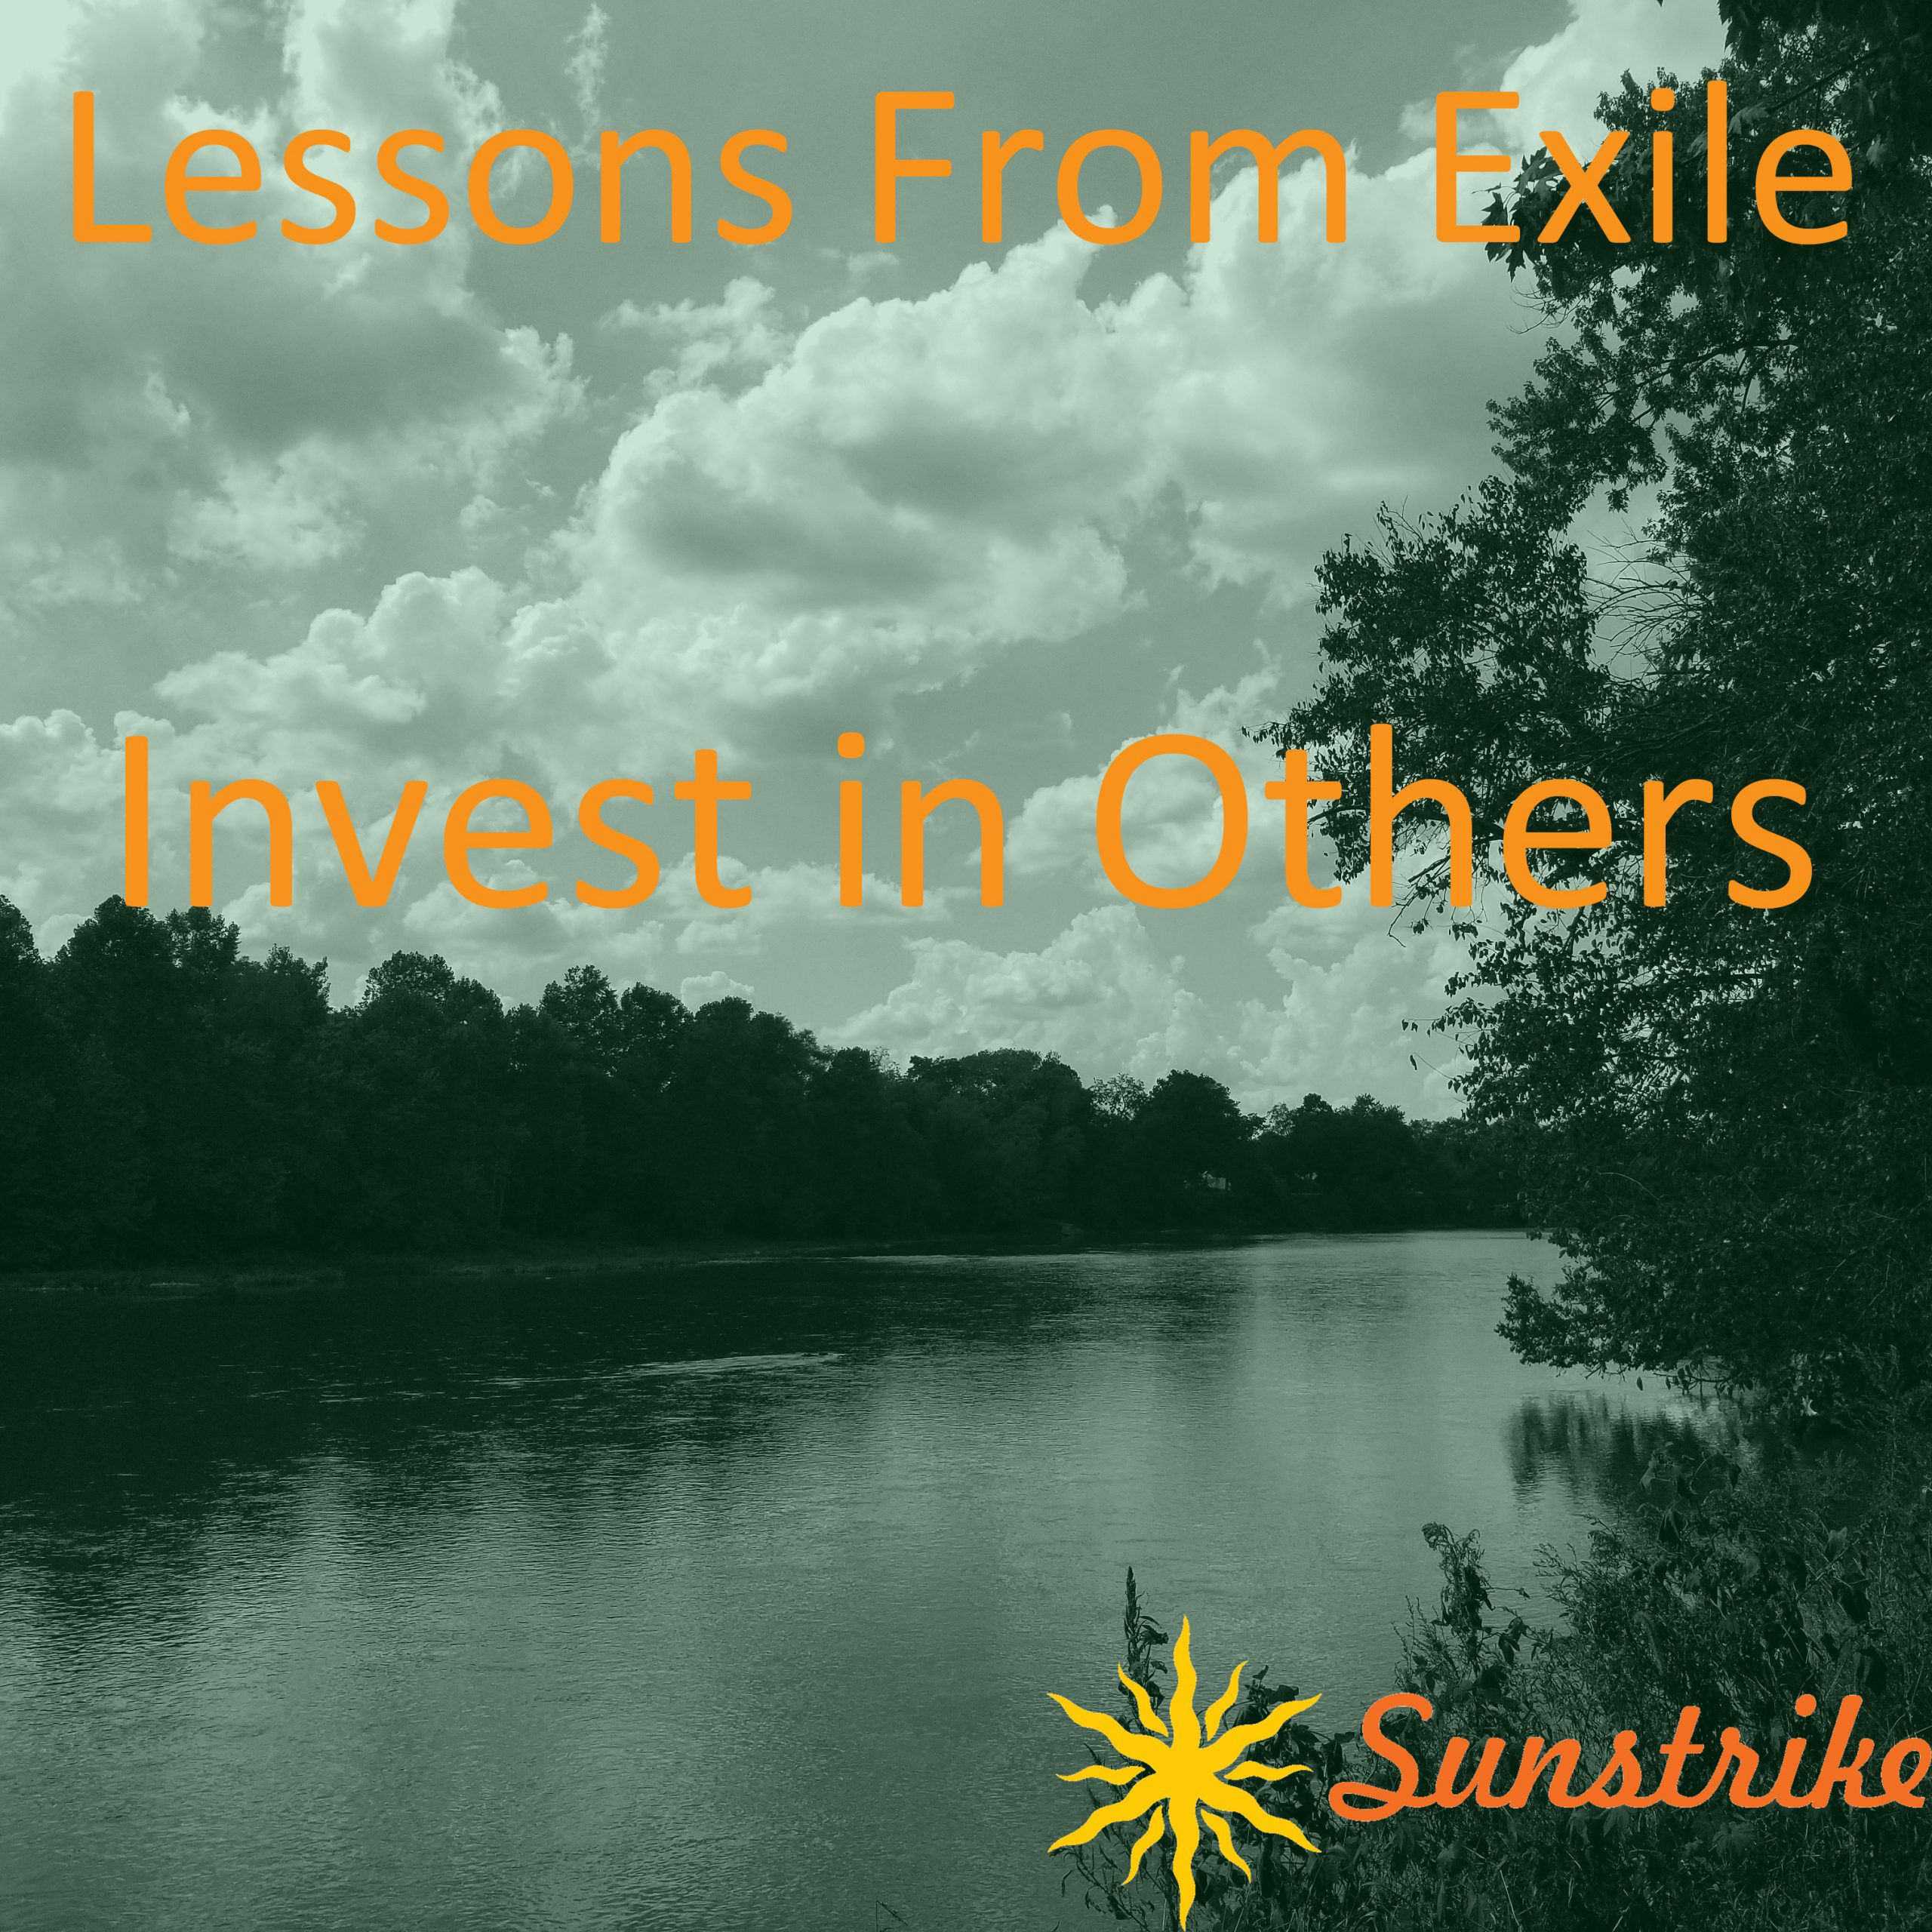 Lessons from Exile #57: Invest In Others